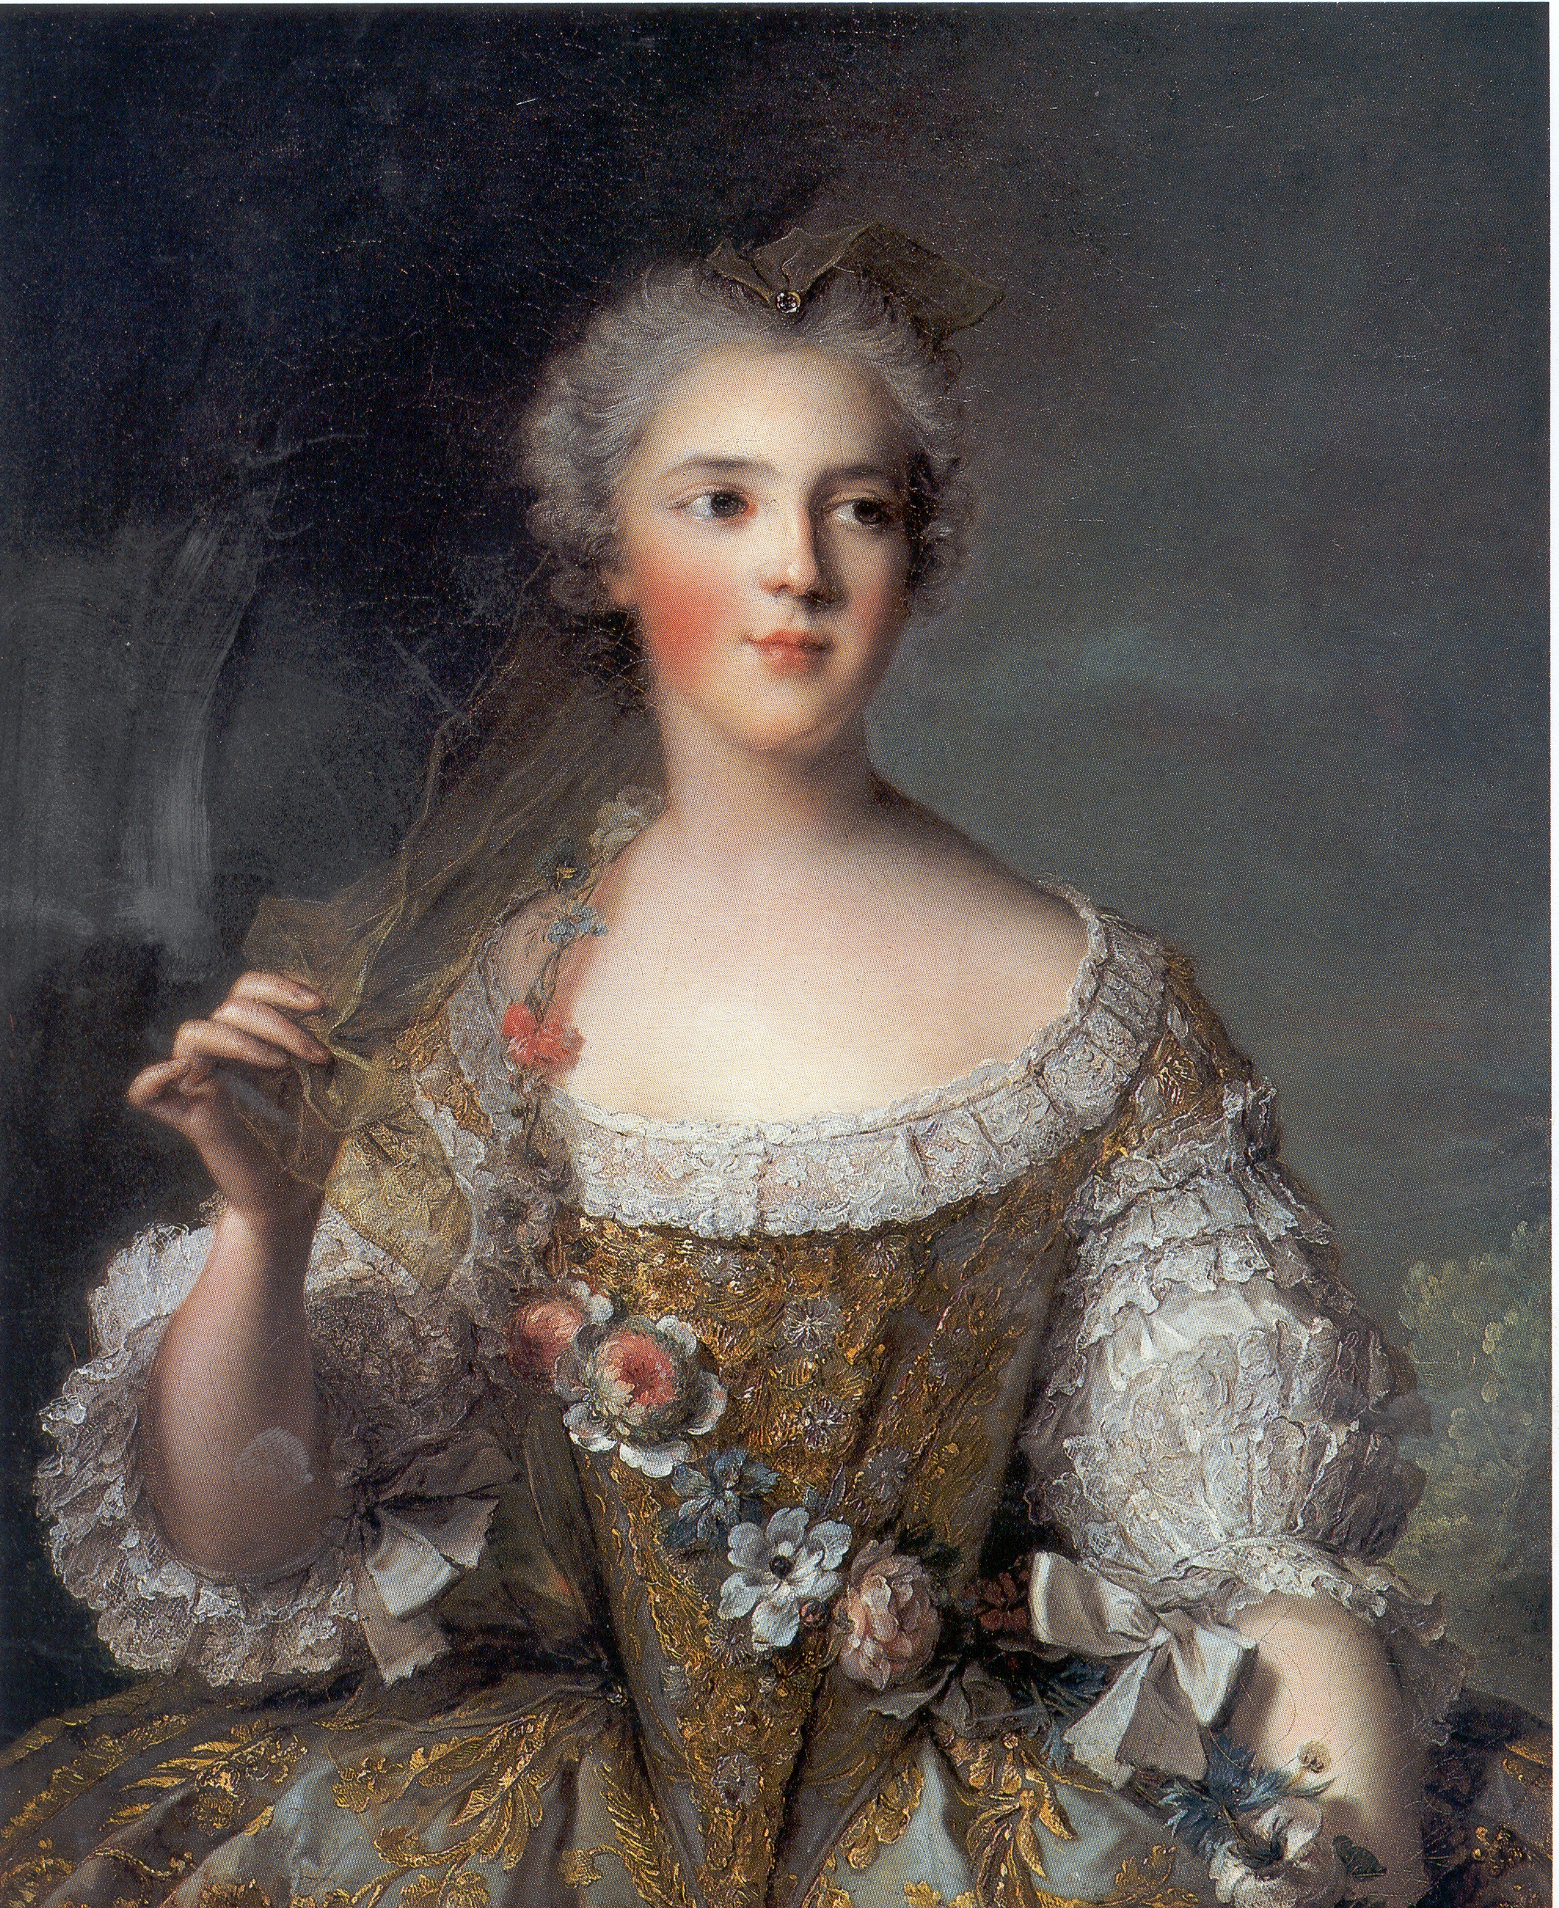 File:Jean-Marc Nattier, Madame Sophie de France (1748) - 02